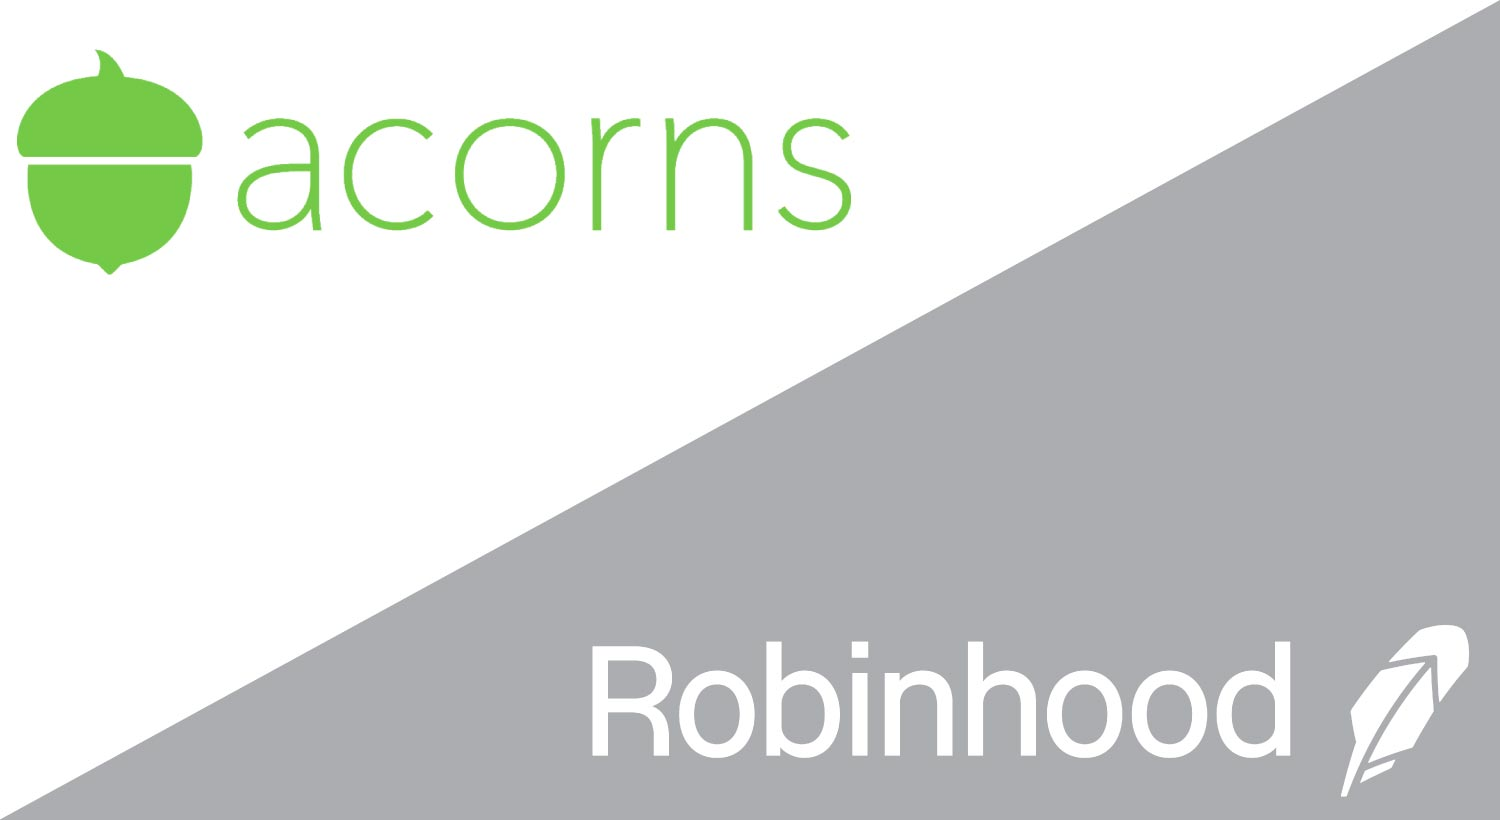 robinhood vs acorns